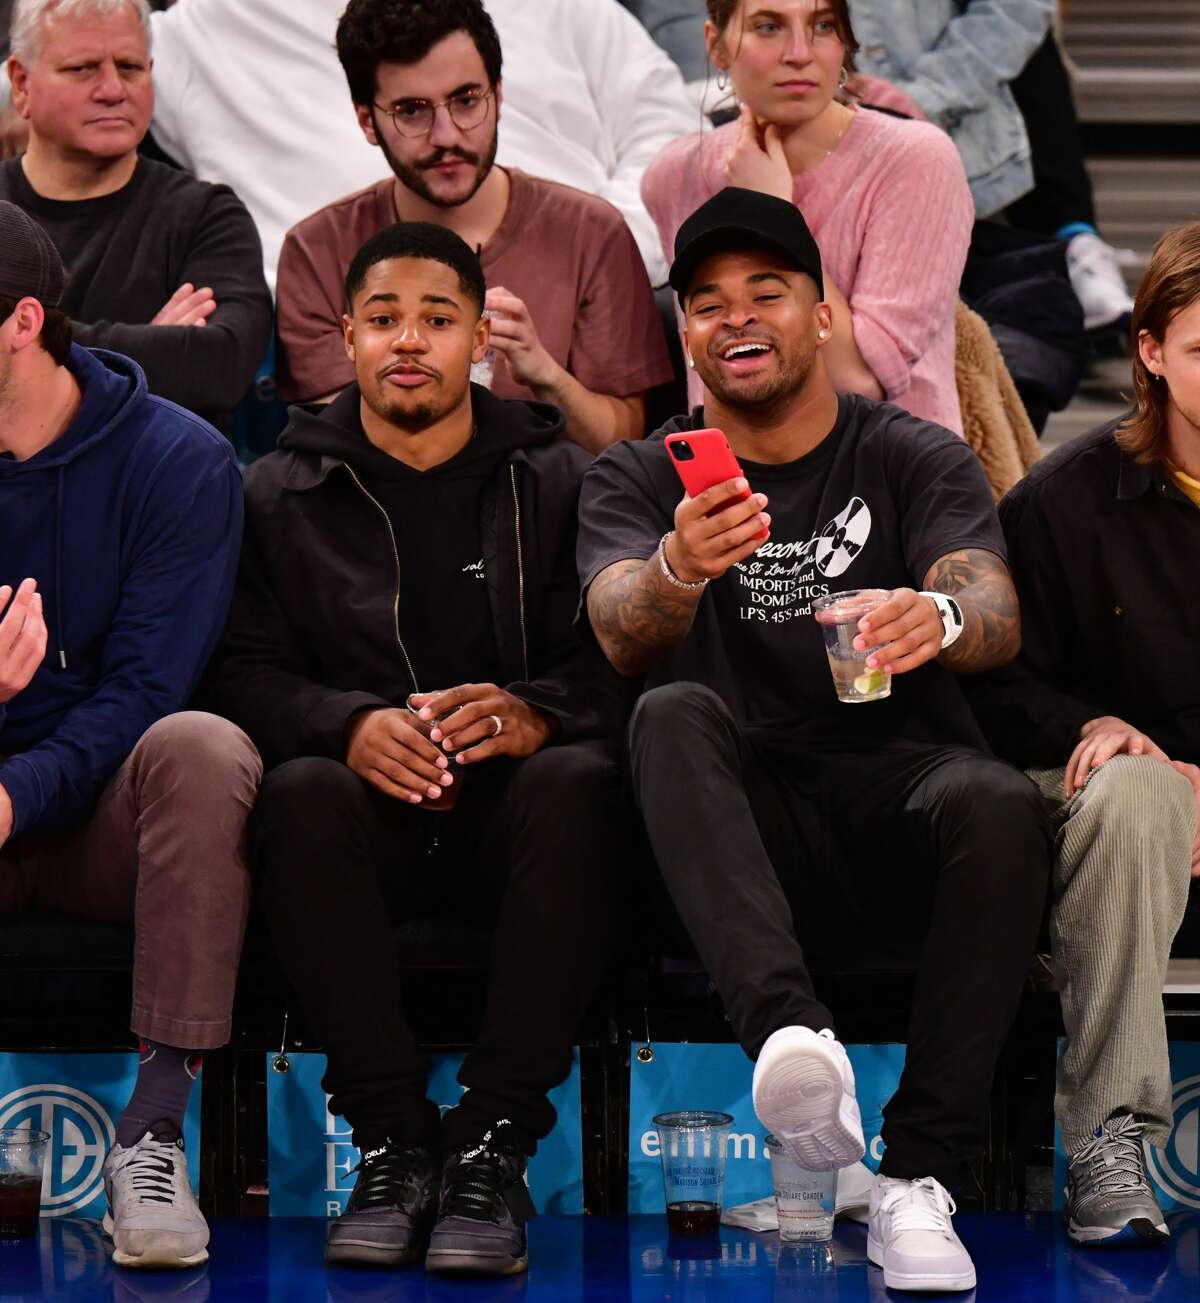 NEW YORK, NY - MARCH 02: Sterling Shepard and Jamal Adams attend Houston Rockets v New York Knicks game at Madison Square Garden on March 2, 2020 in New York City. (Photo by James Devaney/Getty Images)